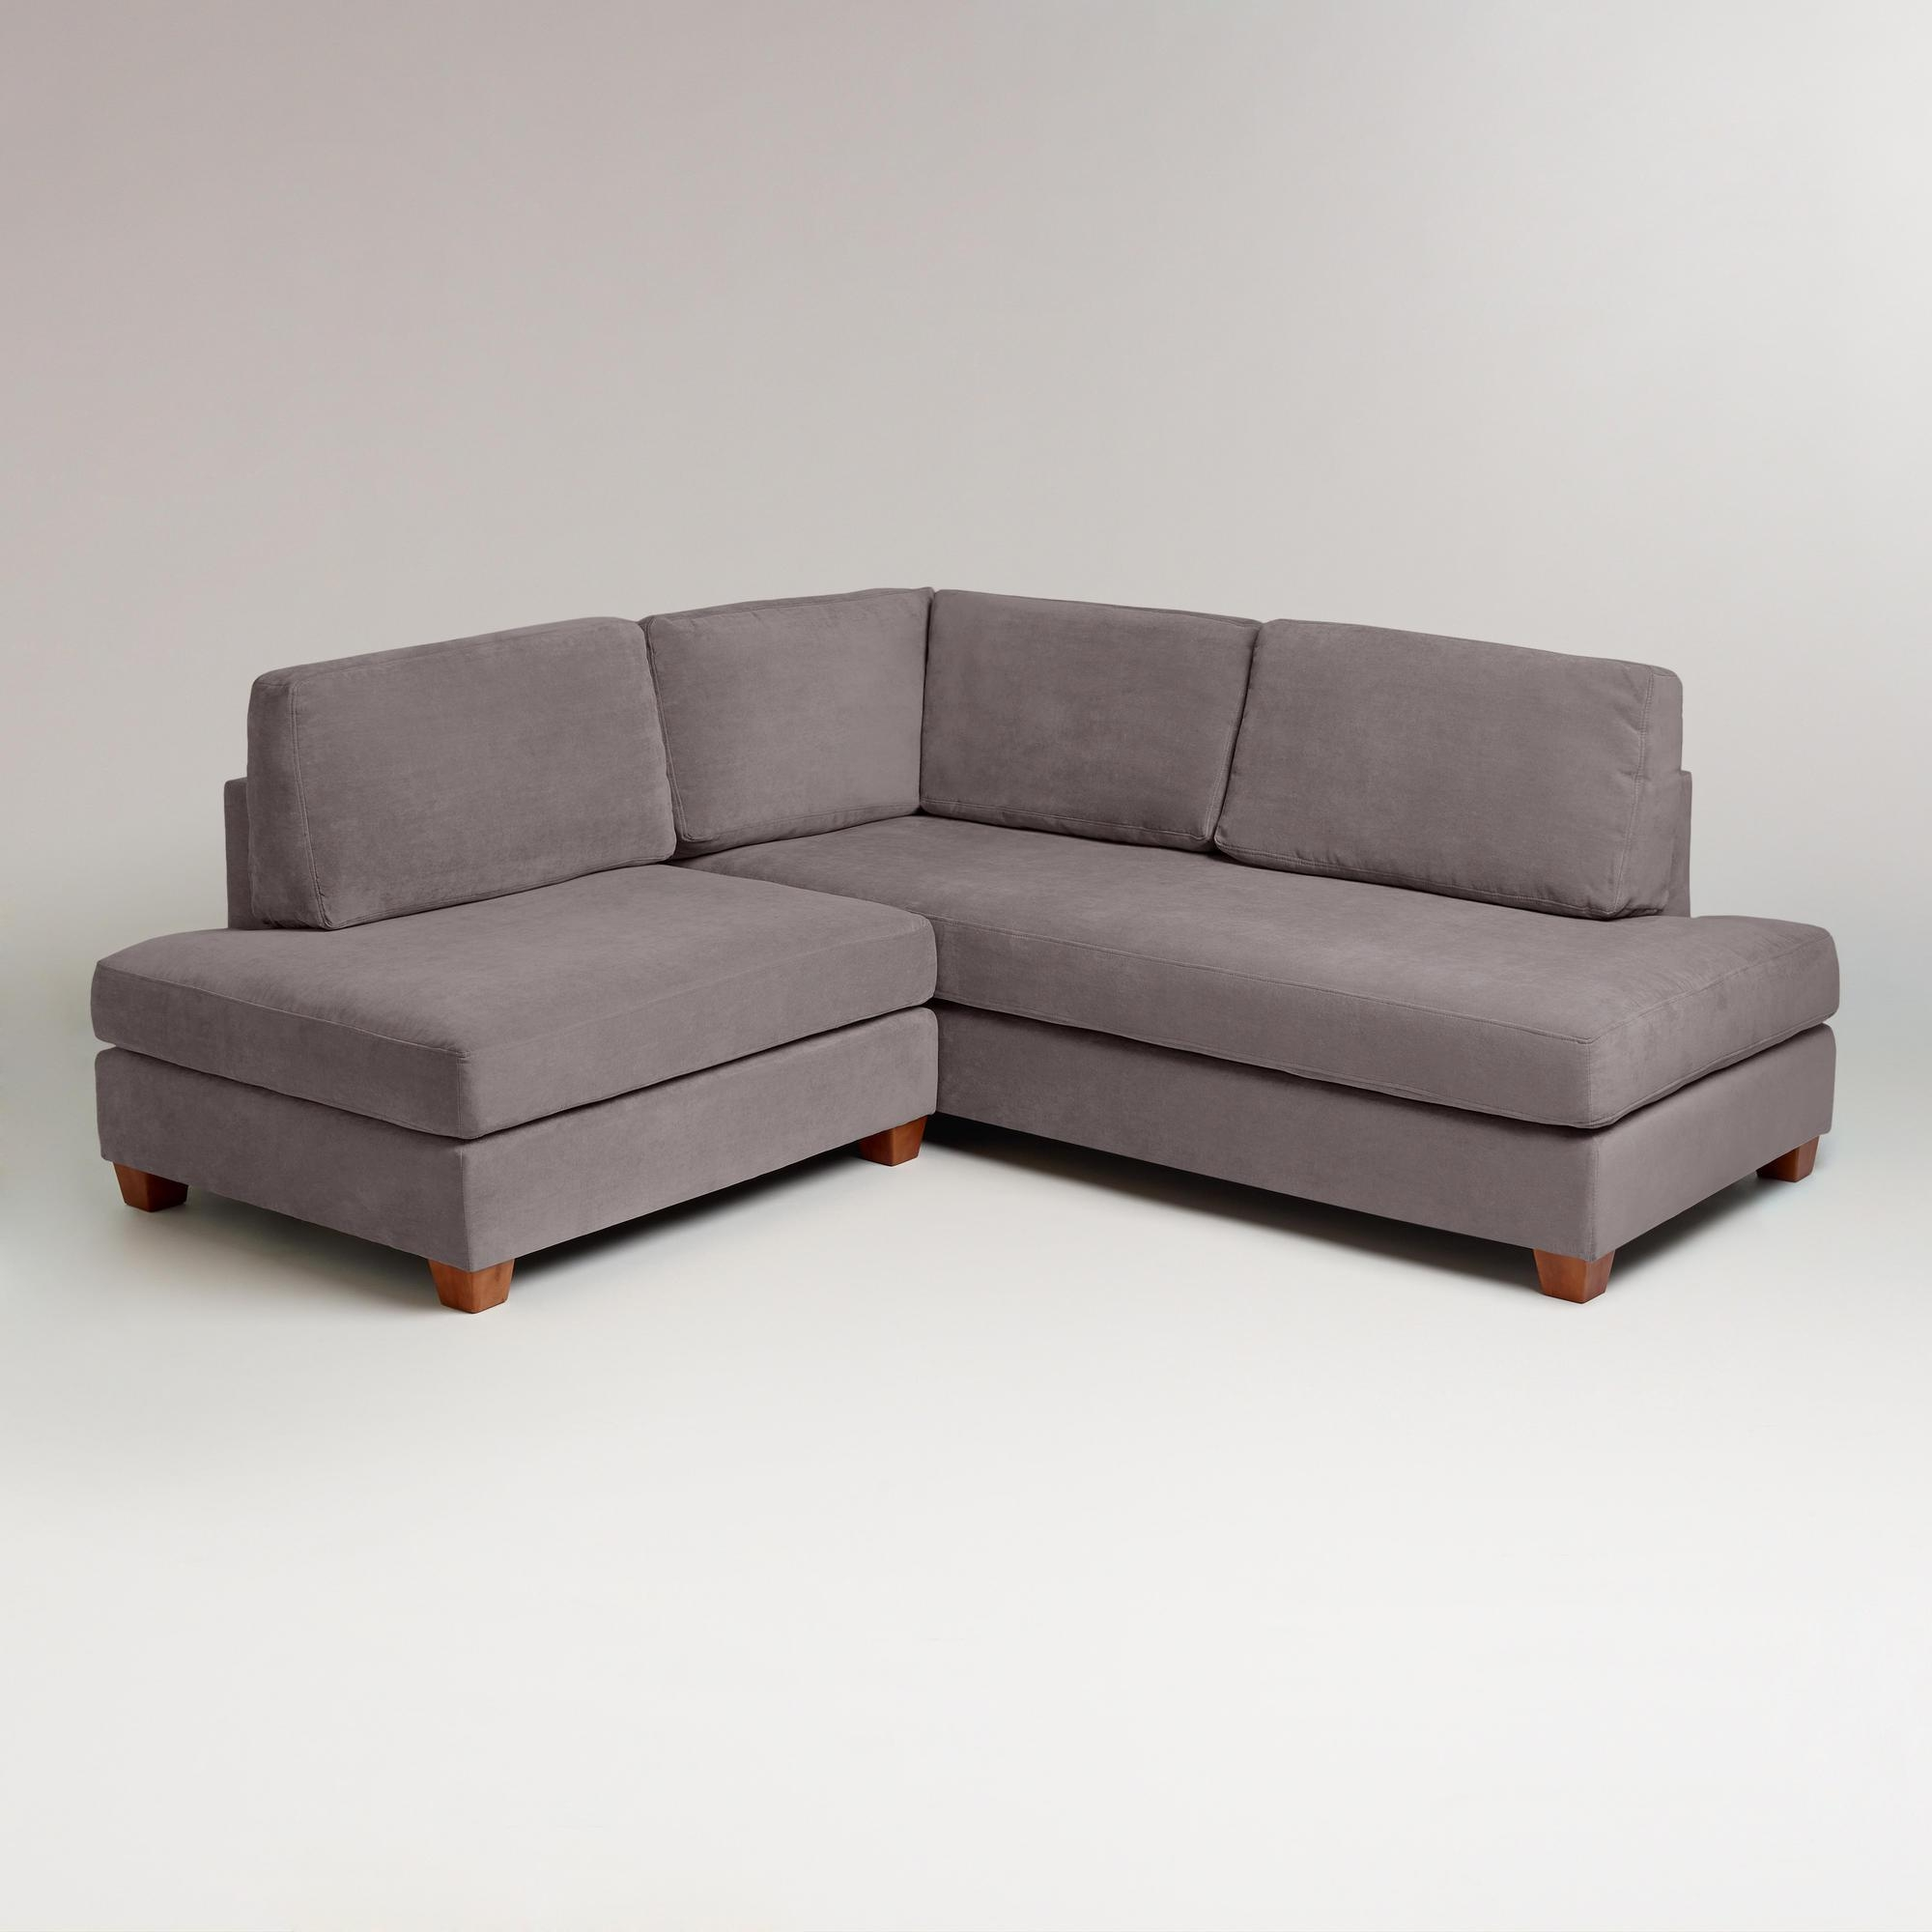 Sofas Center : Stirring Smallnal Sofa Images Ideas Charcoal Wyatt With Regard To Small Scale Sofa Bed (View 16 of 20)